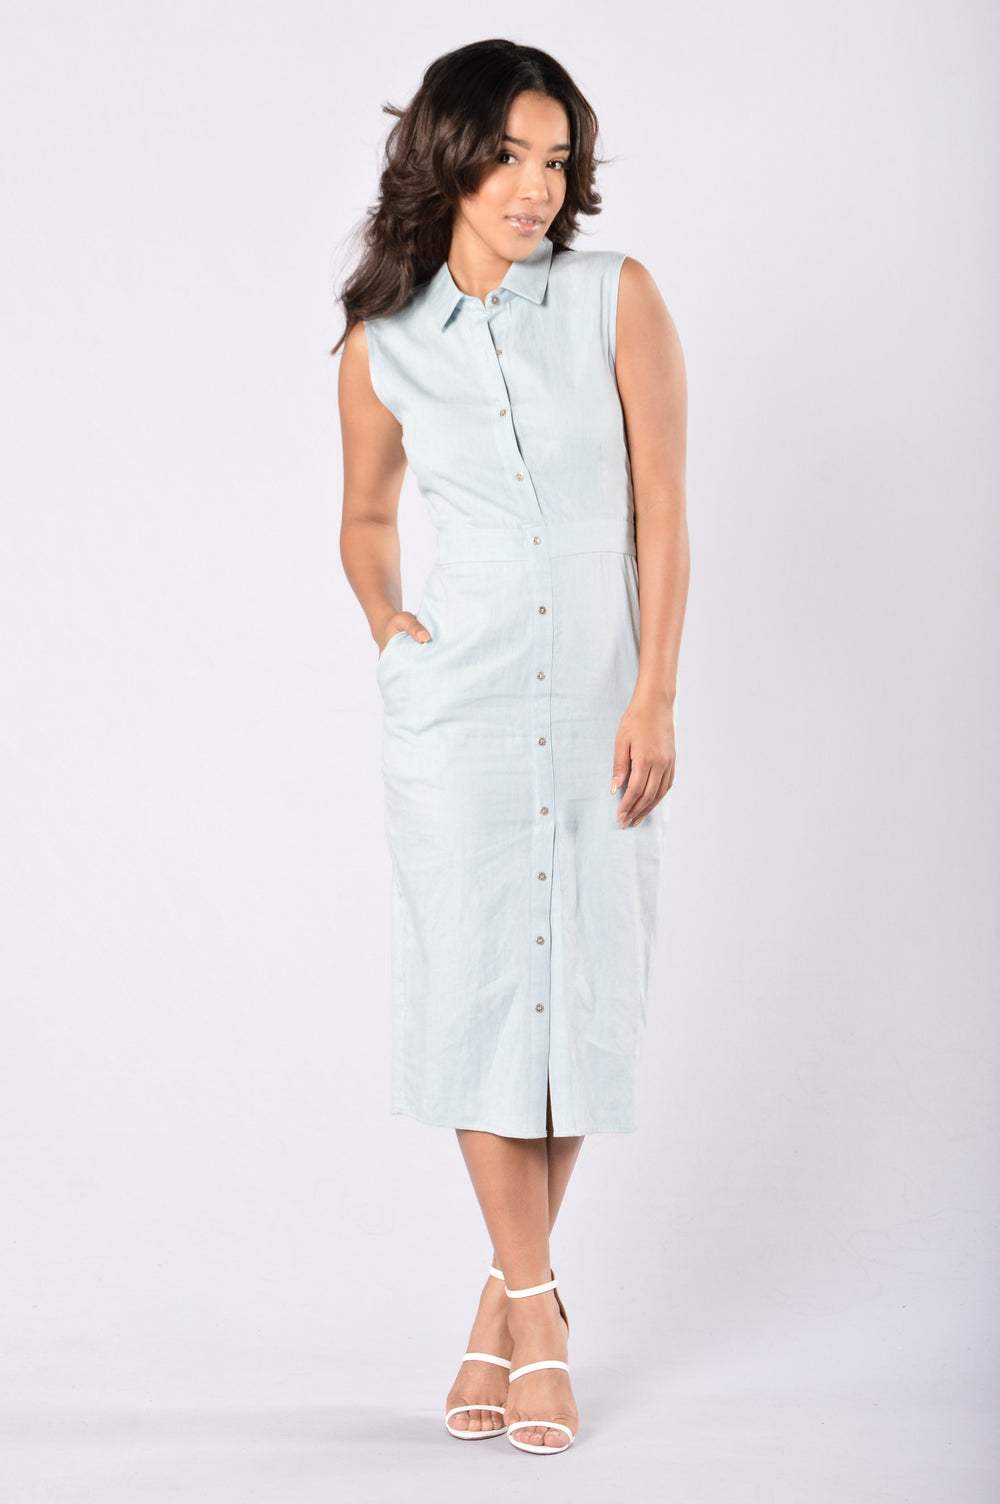 Feeling Blue Dress - Light Denim